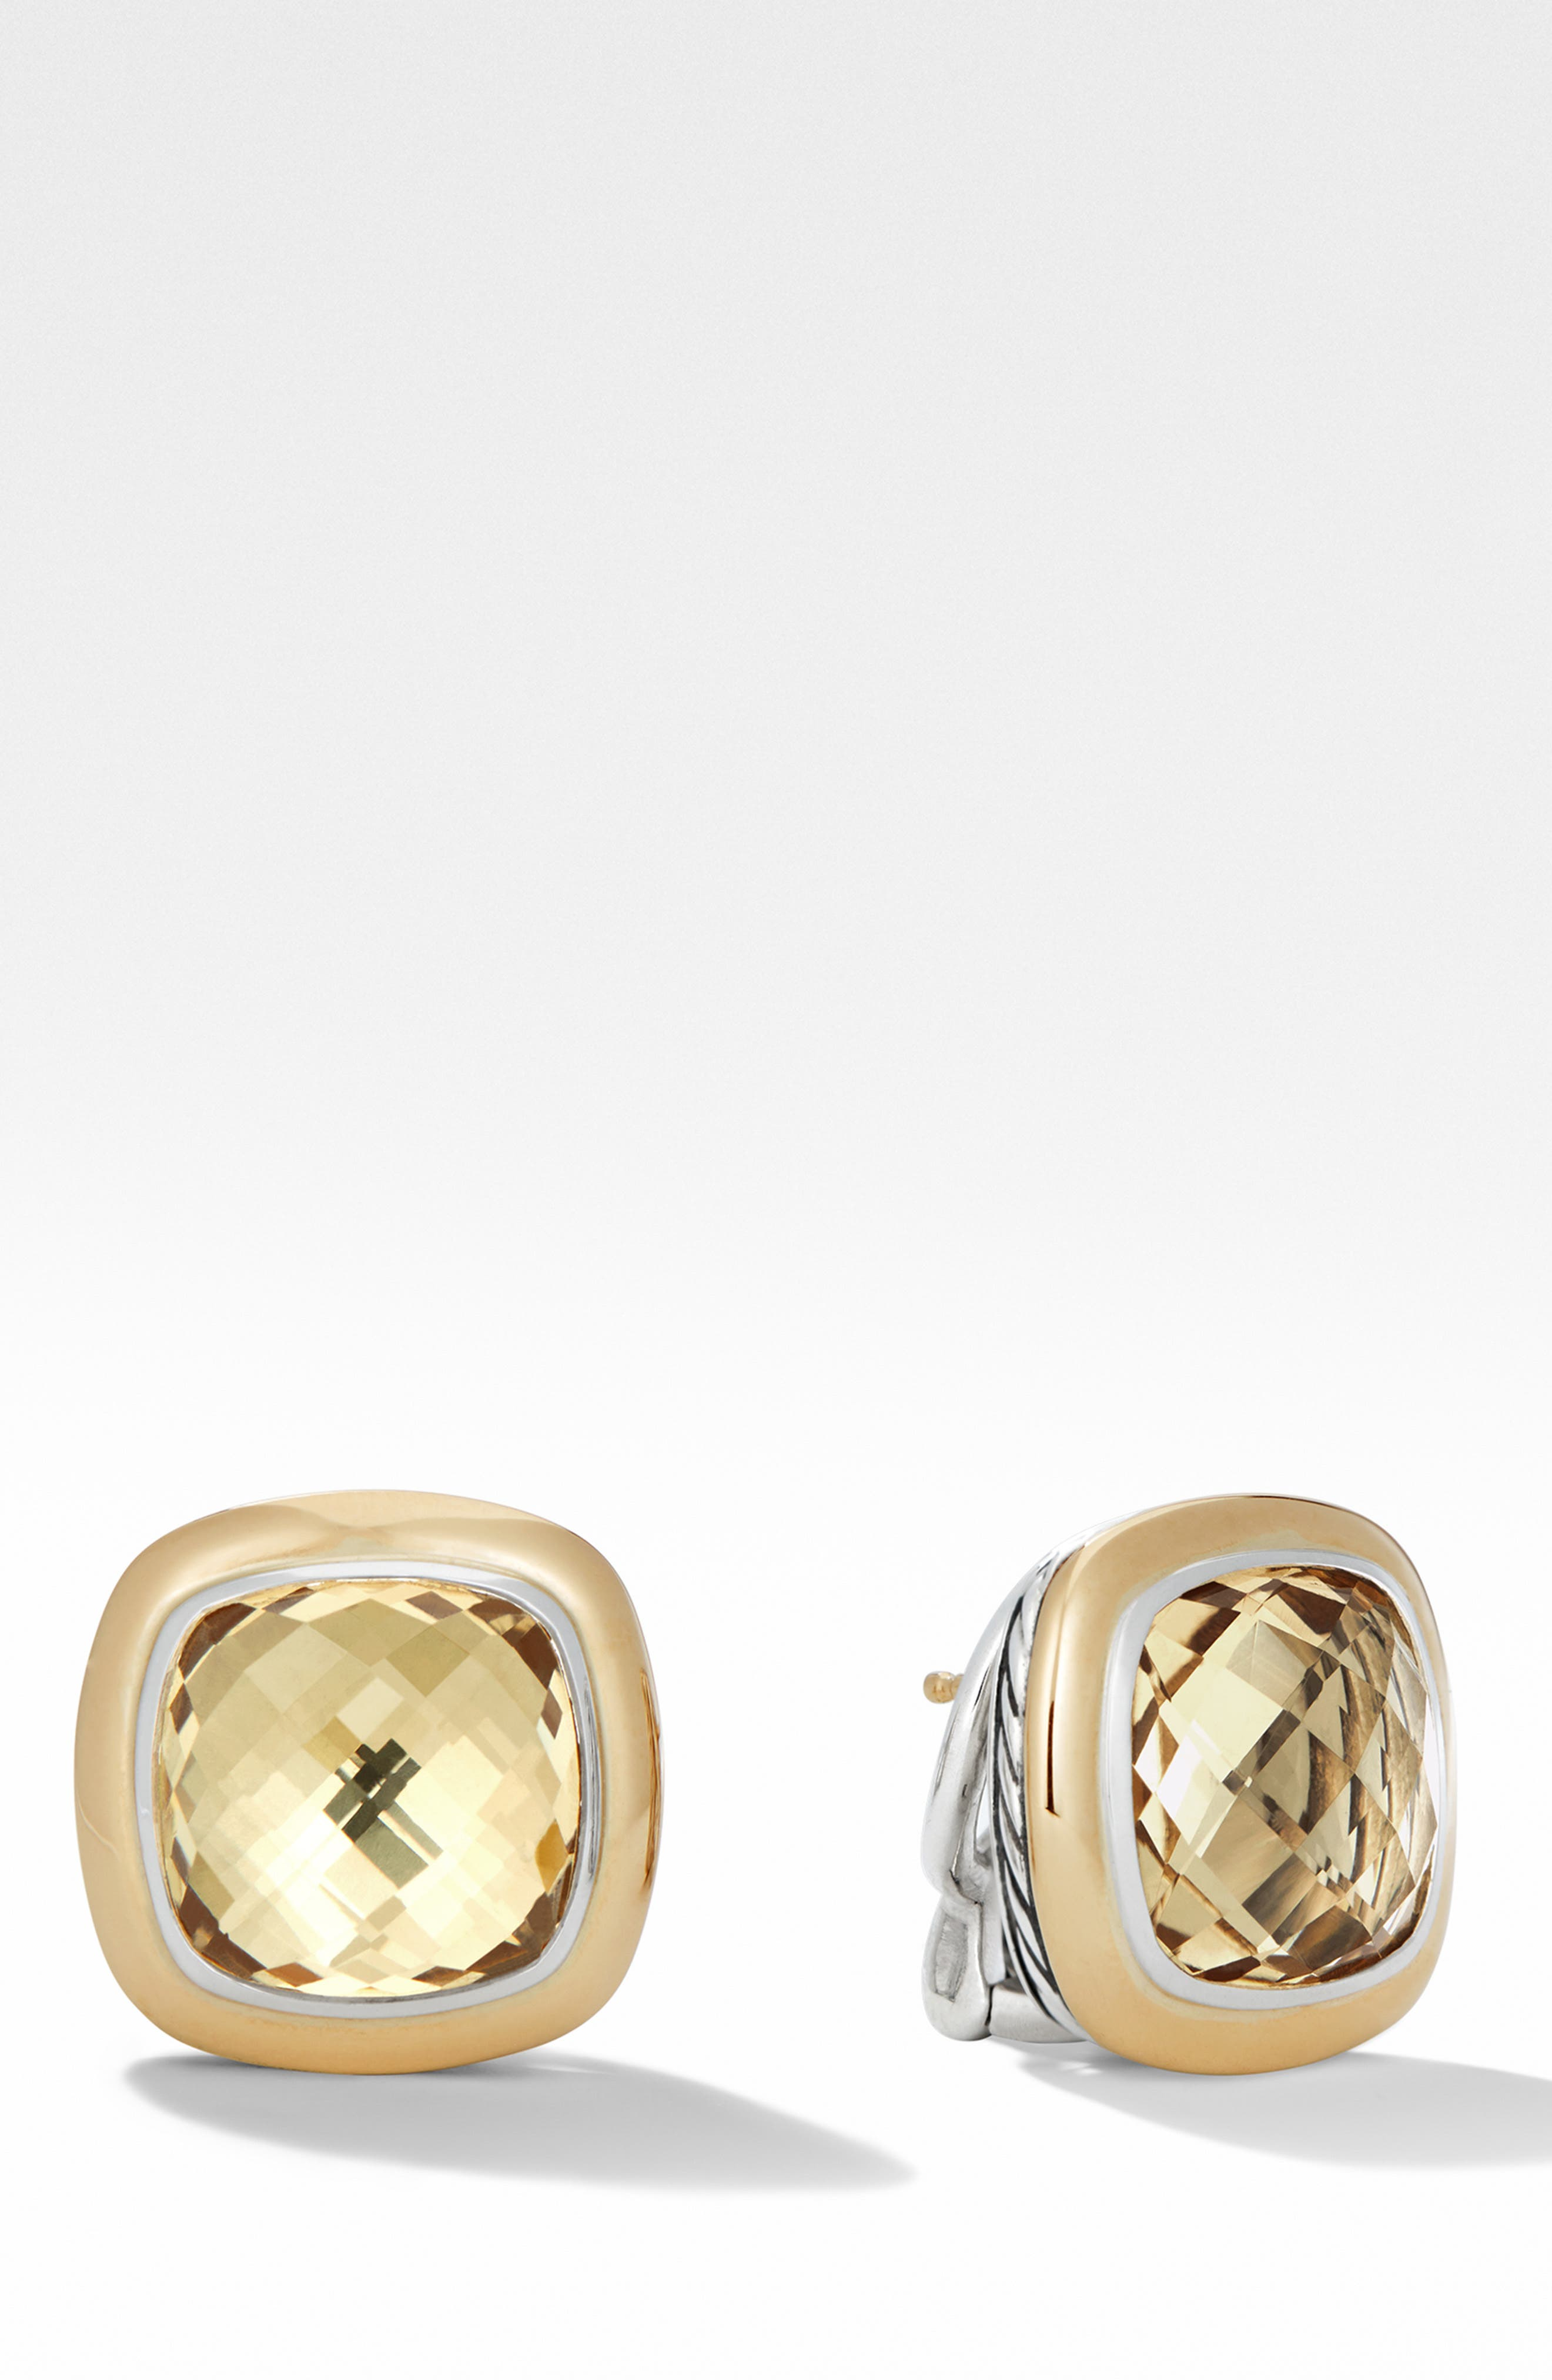 Albion<sup>®</sup> Stud Earrings with 18K Gold,                             Main thumbnail 1, color,                             CHAMPAGNE CITRINE